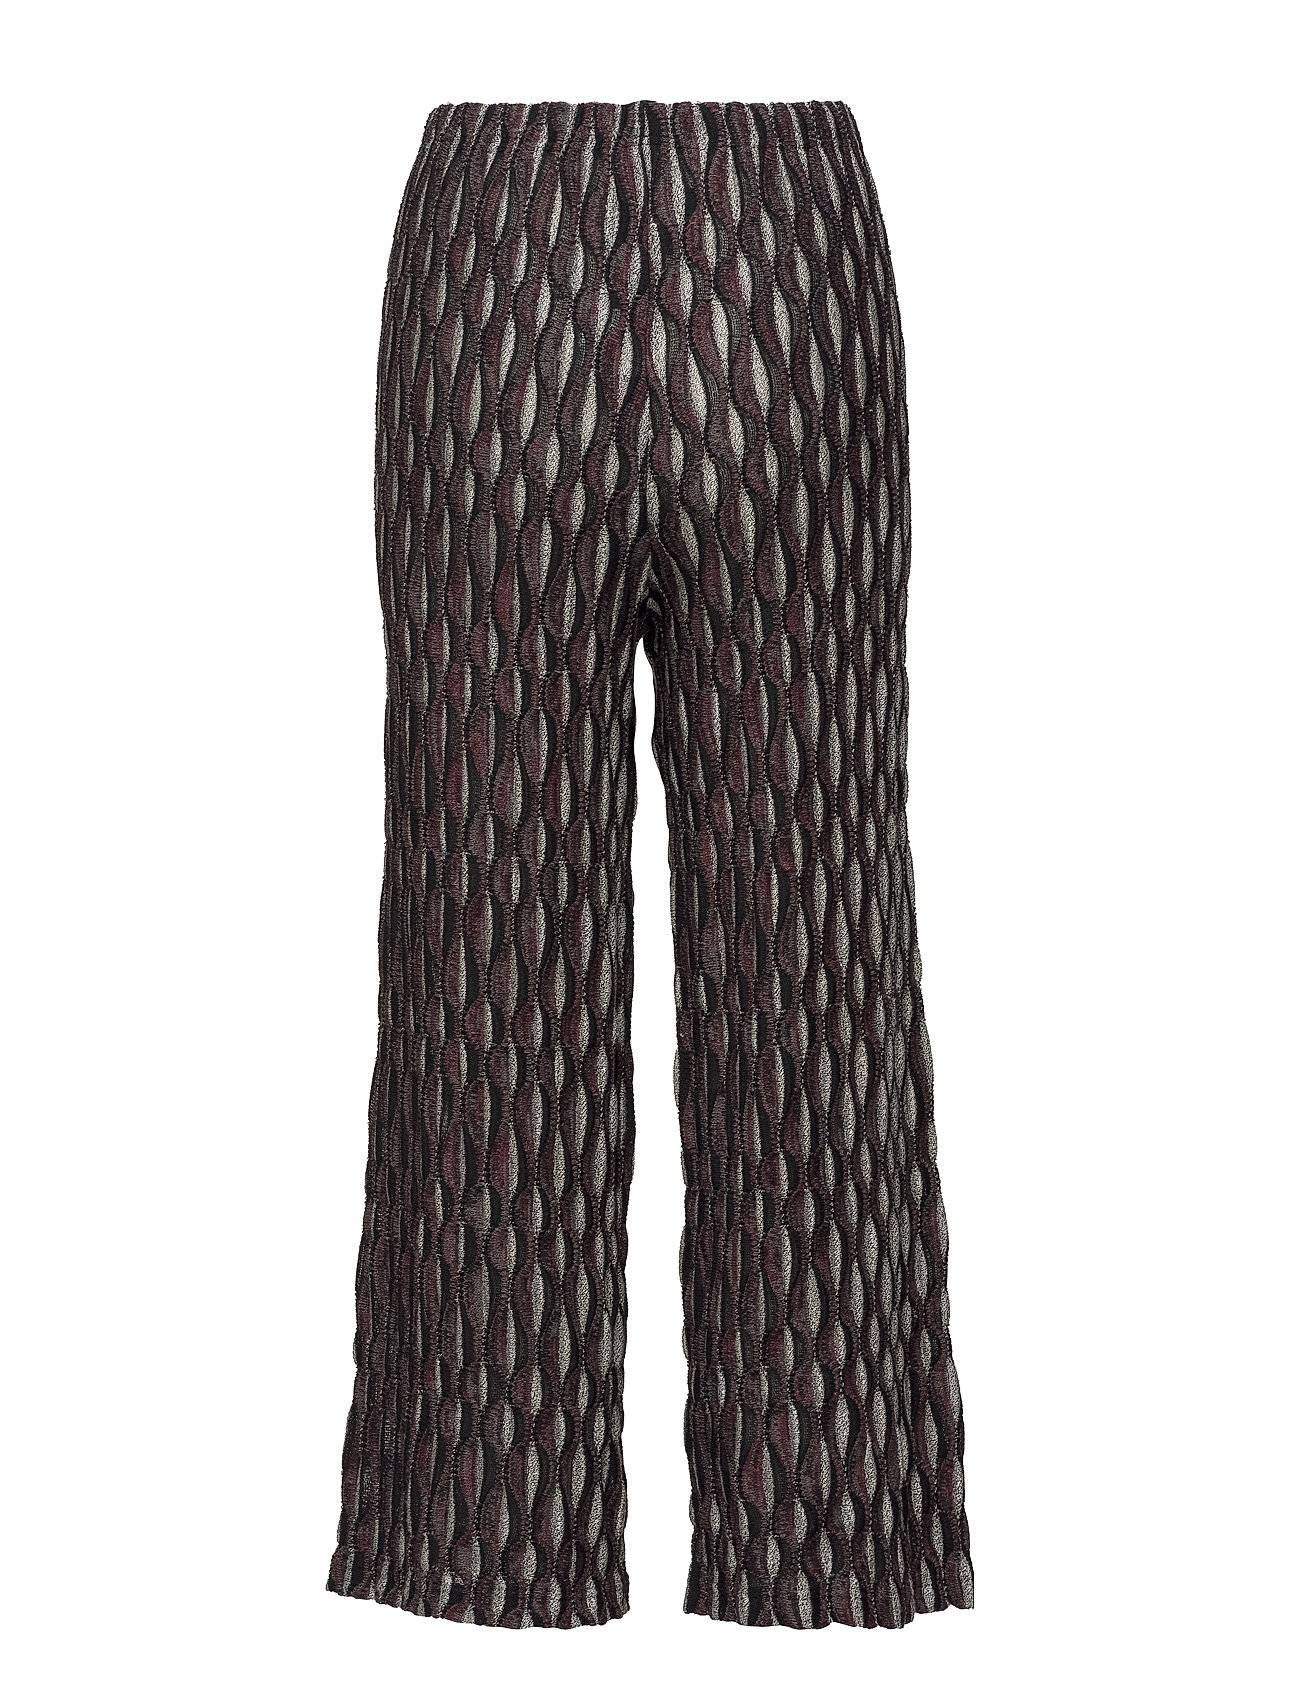 Diana Orving Cropped Trousers